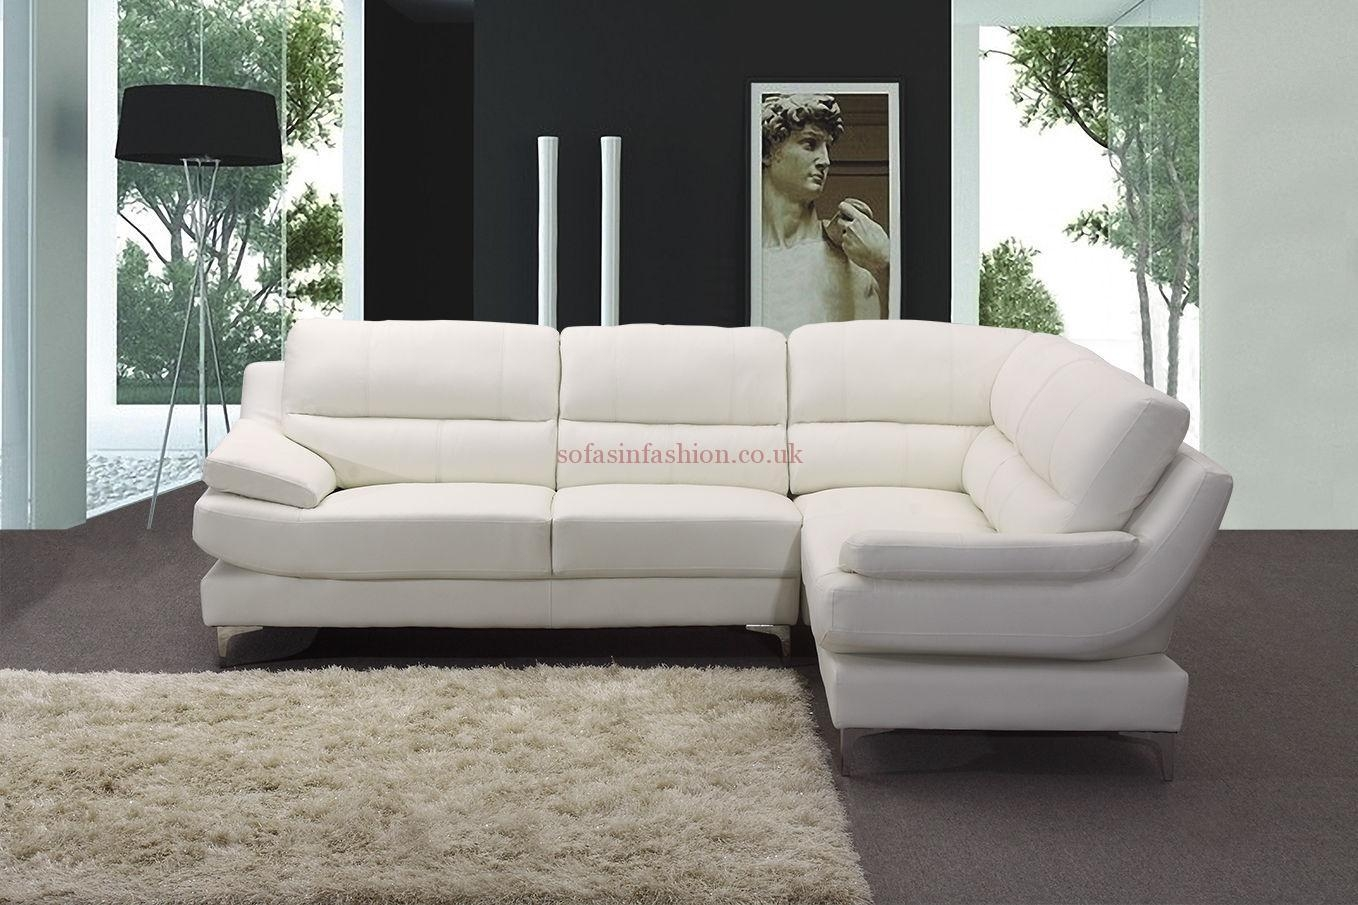 Leather Corner Sofas And Corner Sofa Leather Sofa Leather Sofa Within Corner Sofa Leather (Image 10 of 20)